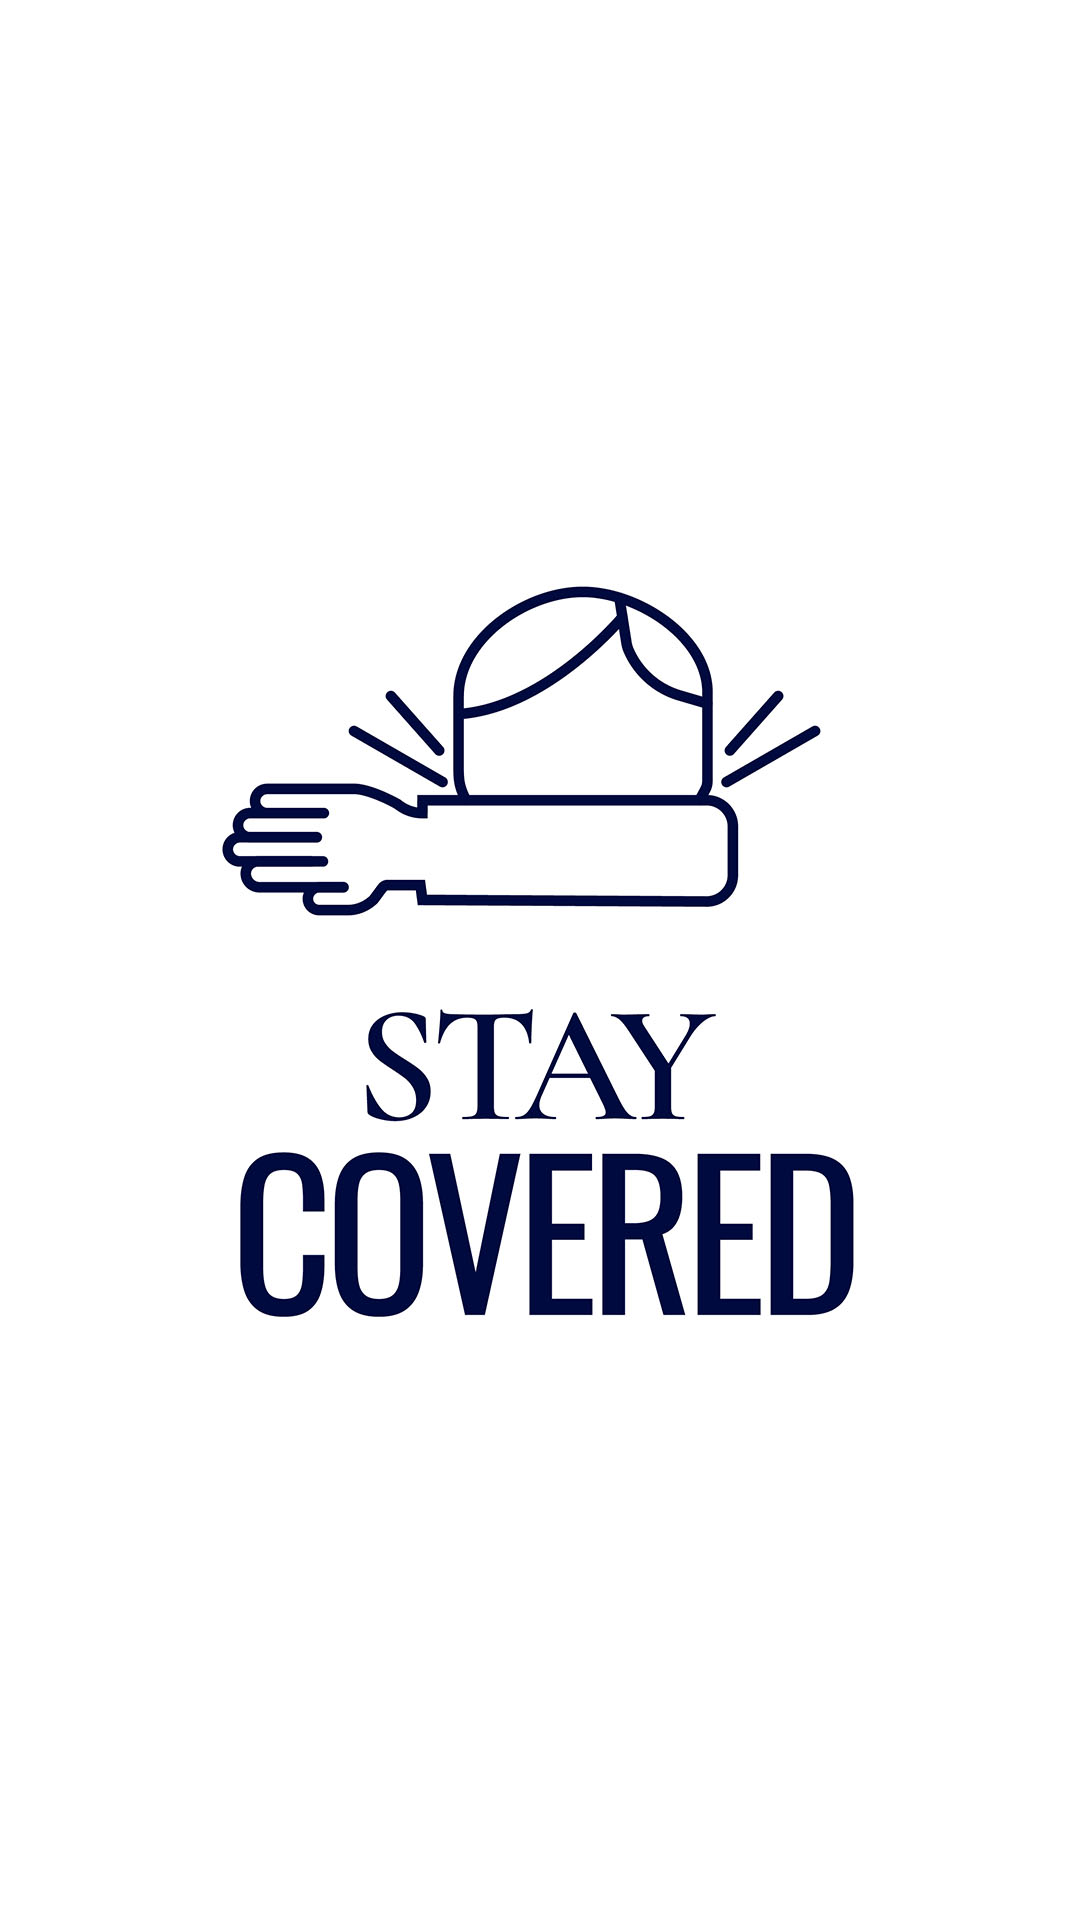 Stay covered (cover your mouth)